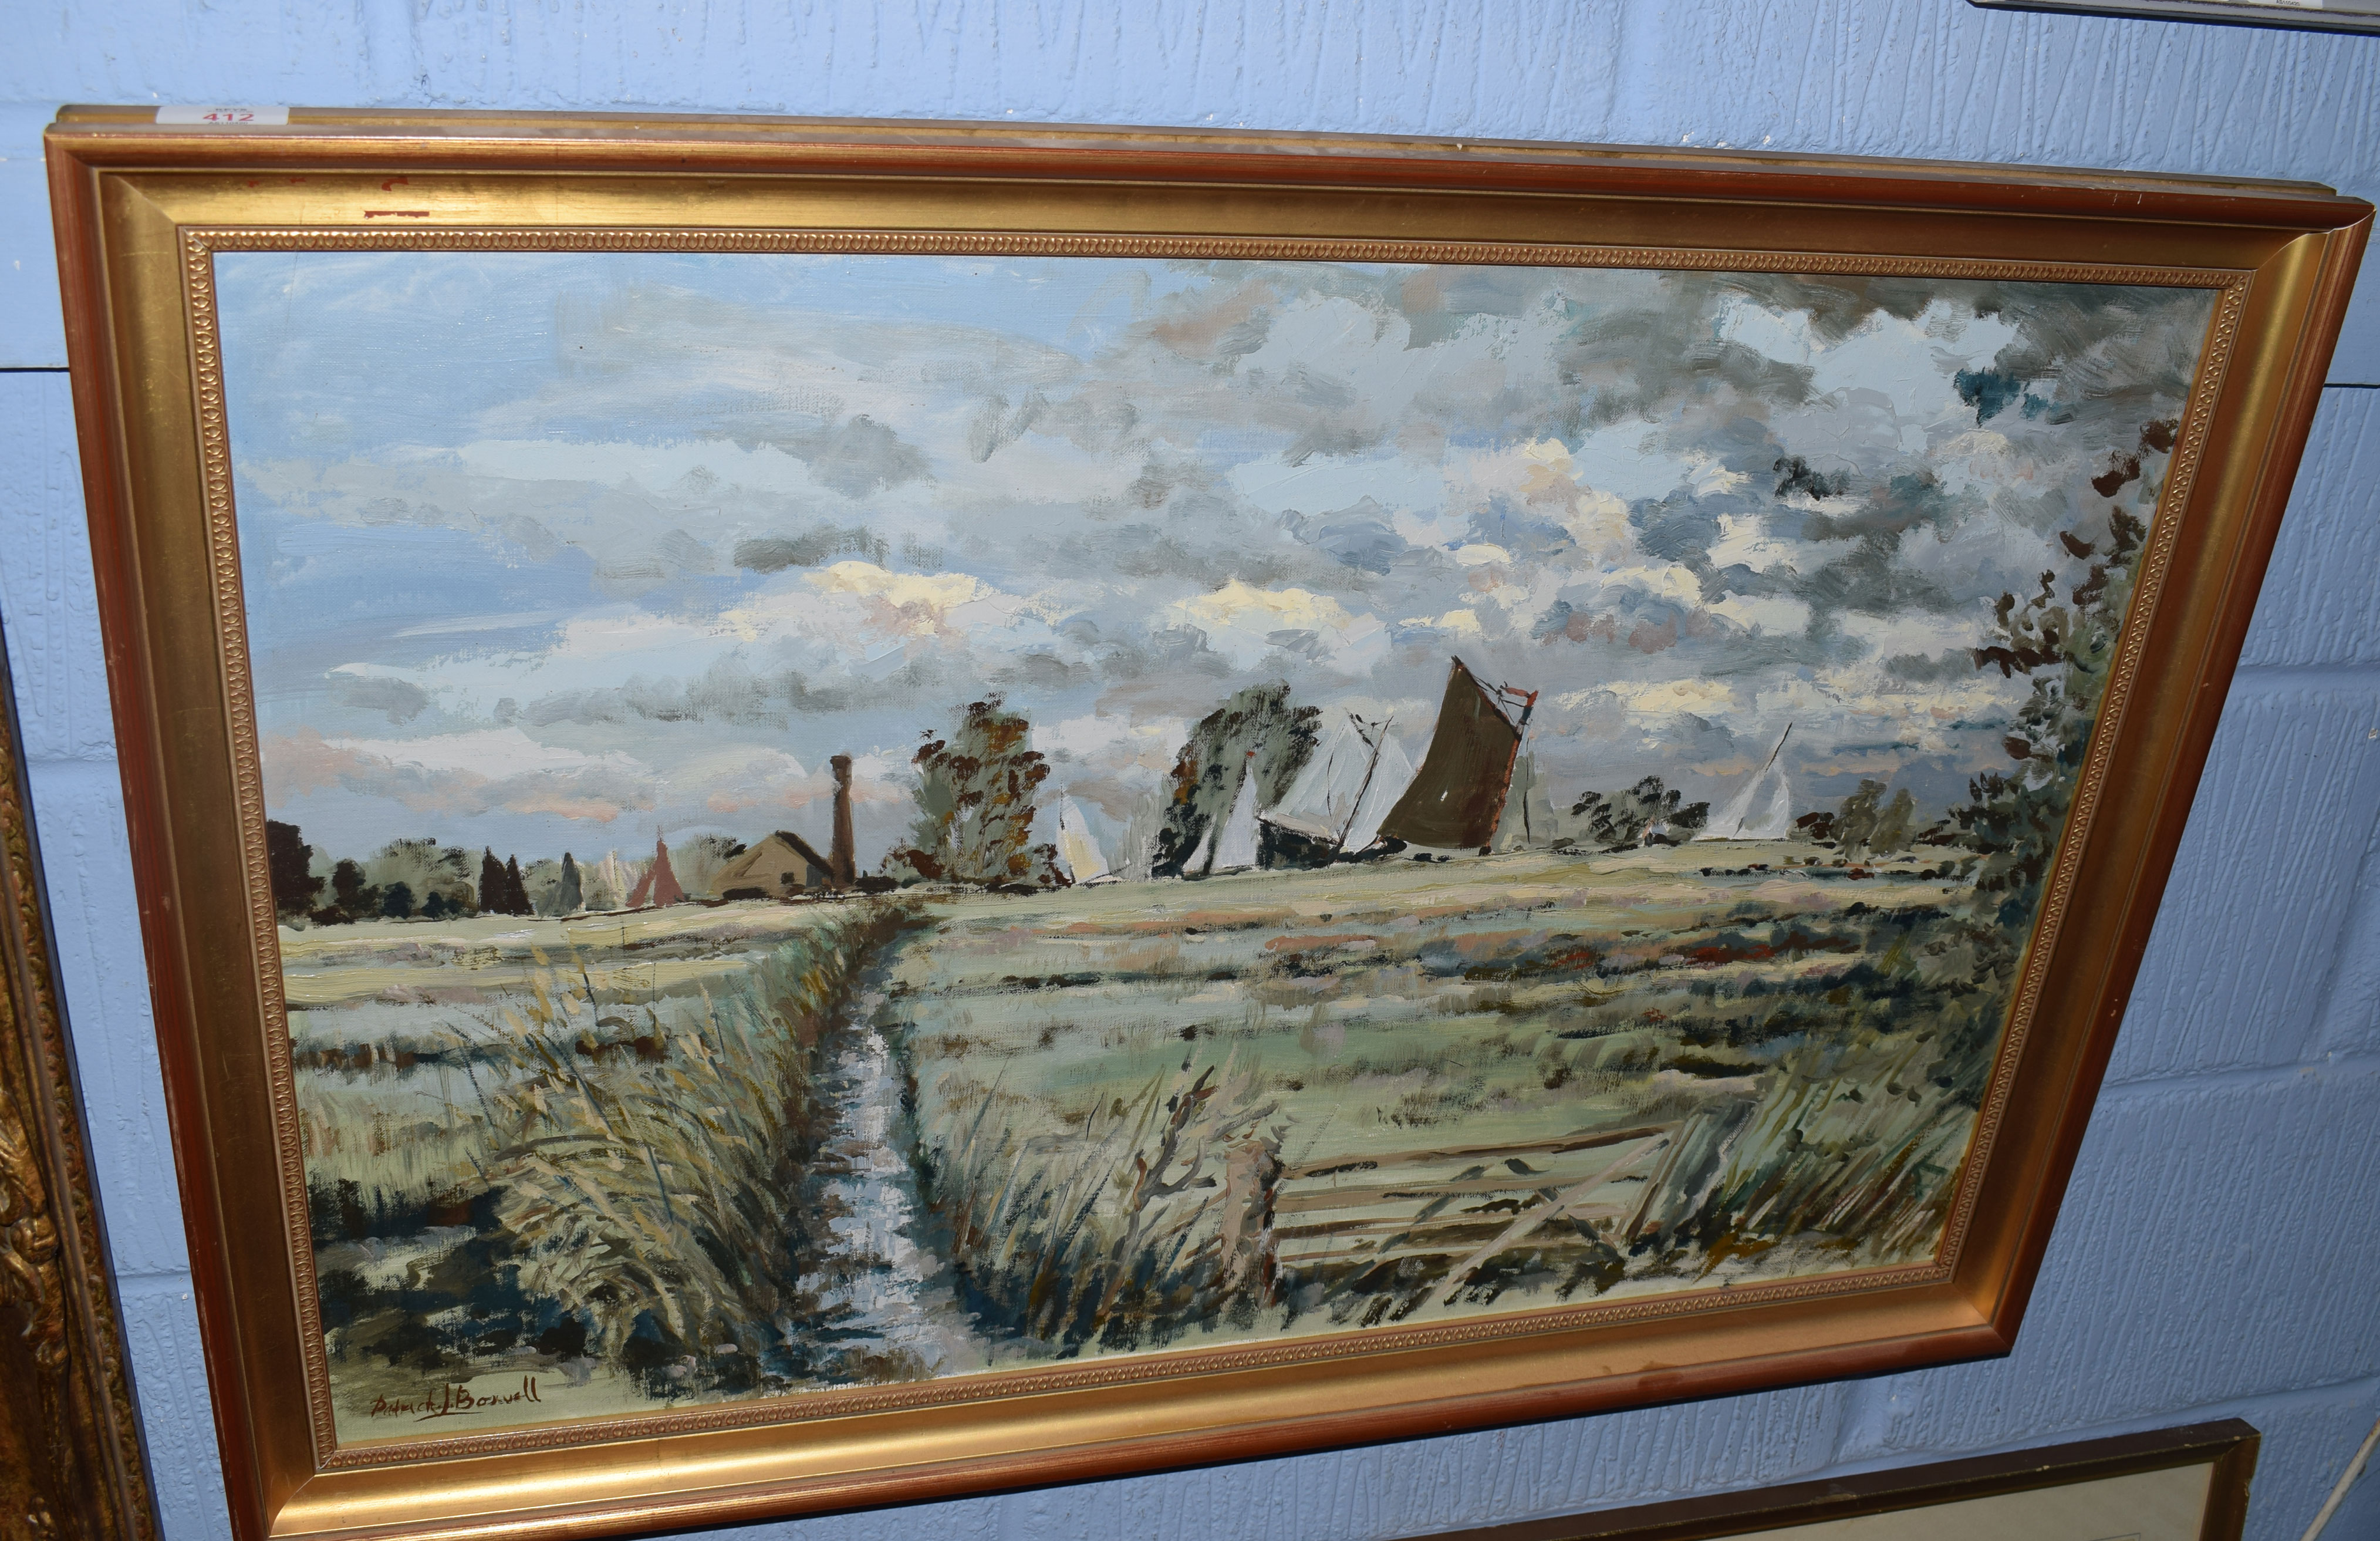 Patrick J Boswell (born 1942) Broadland scene with wherries, oil on canvas, signed lower left, 50